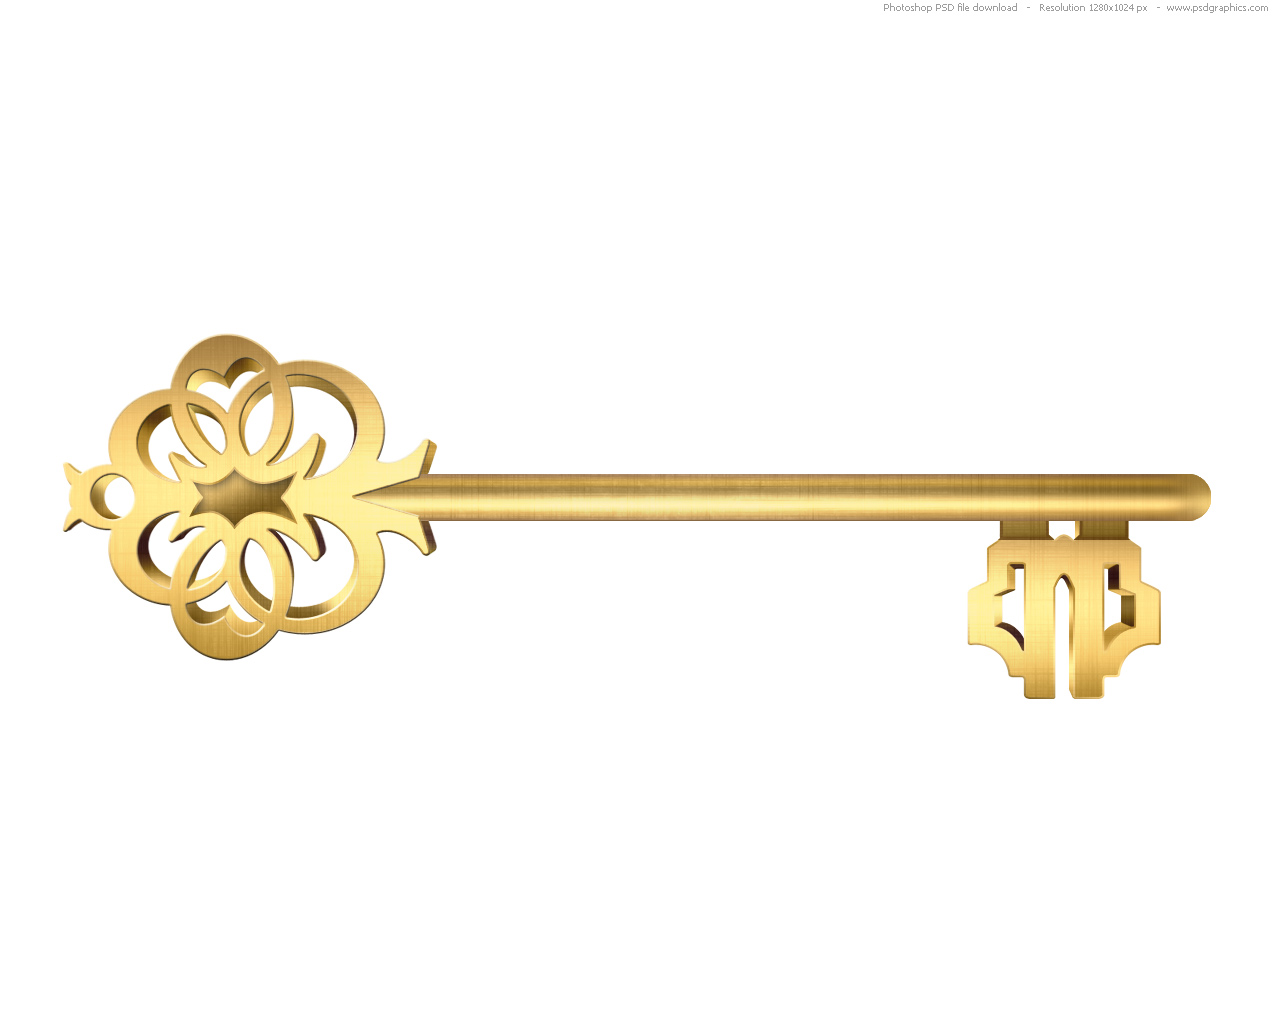 Golden Key Clip Art